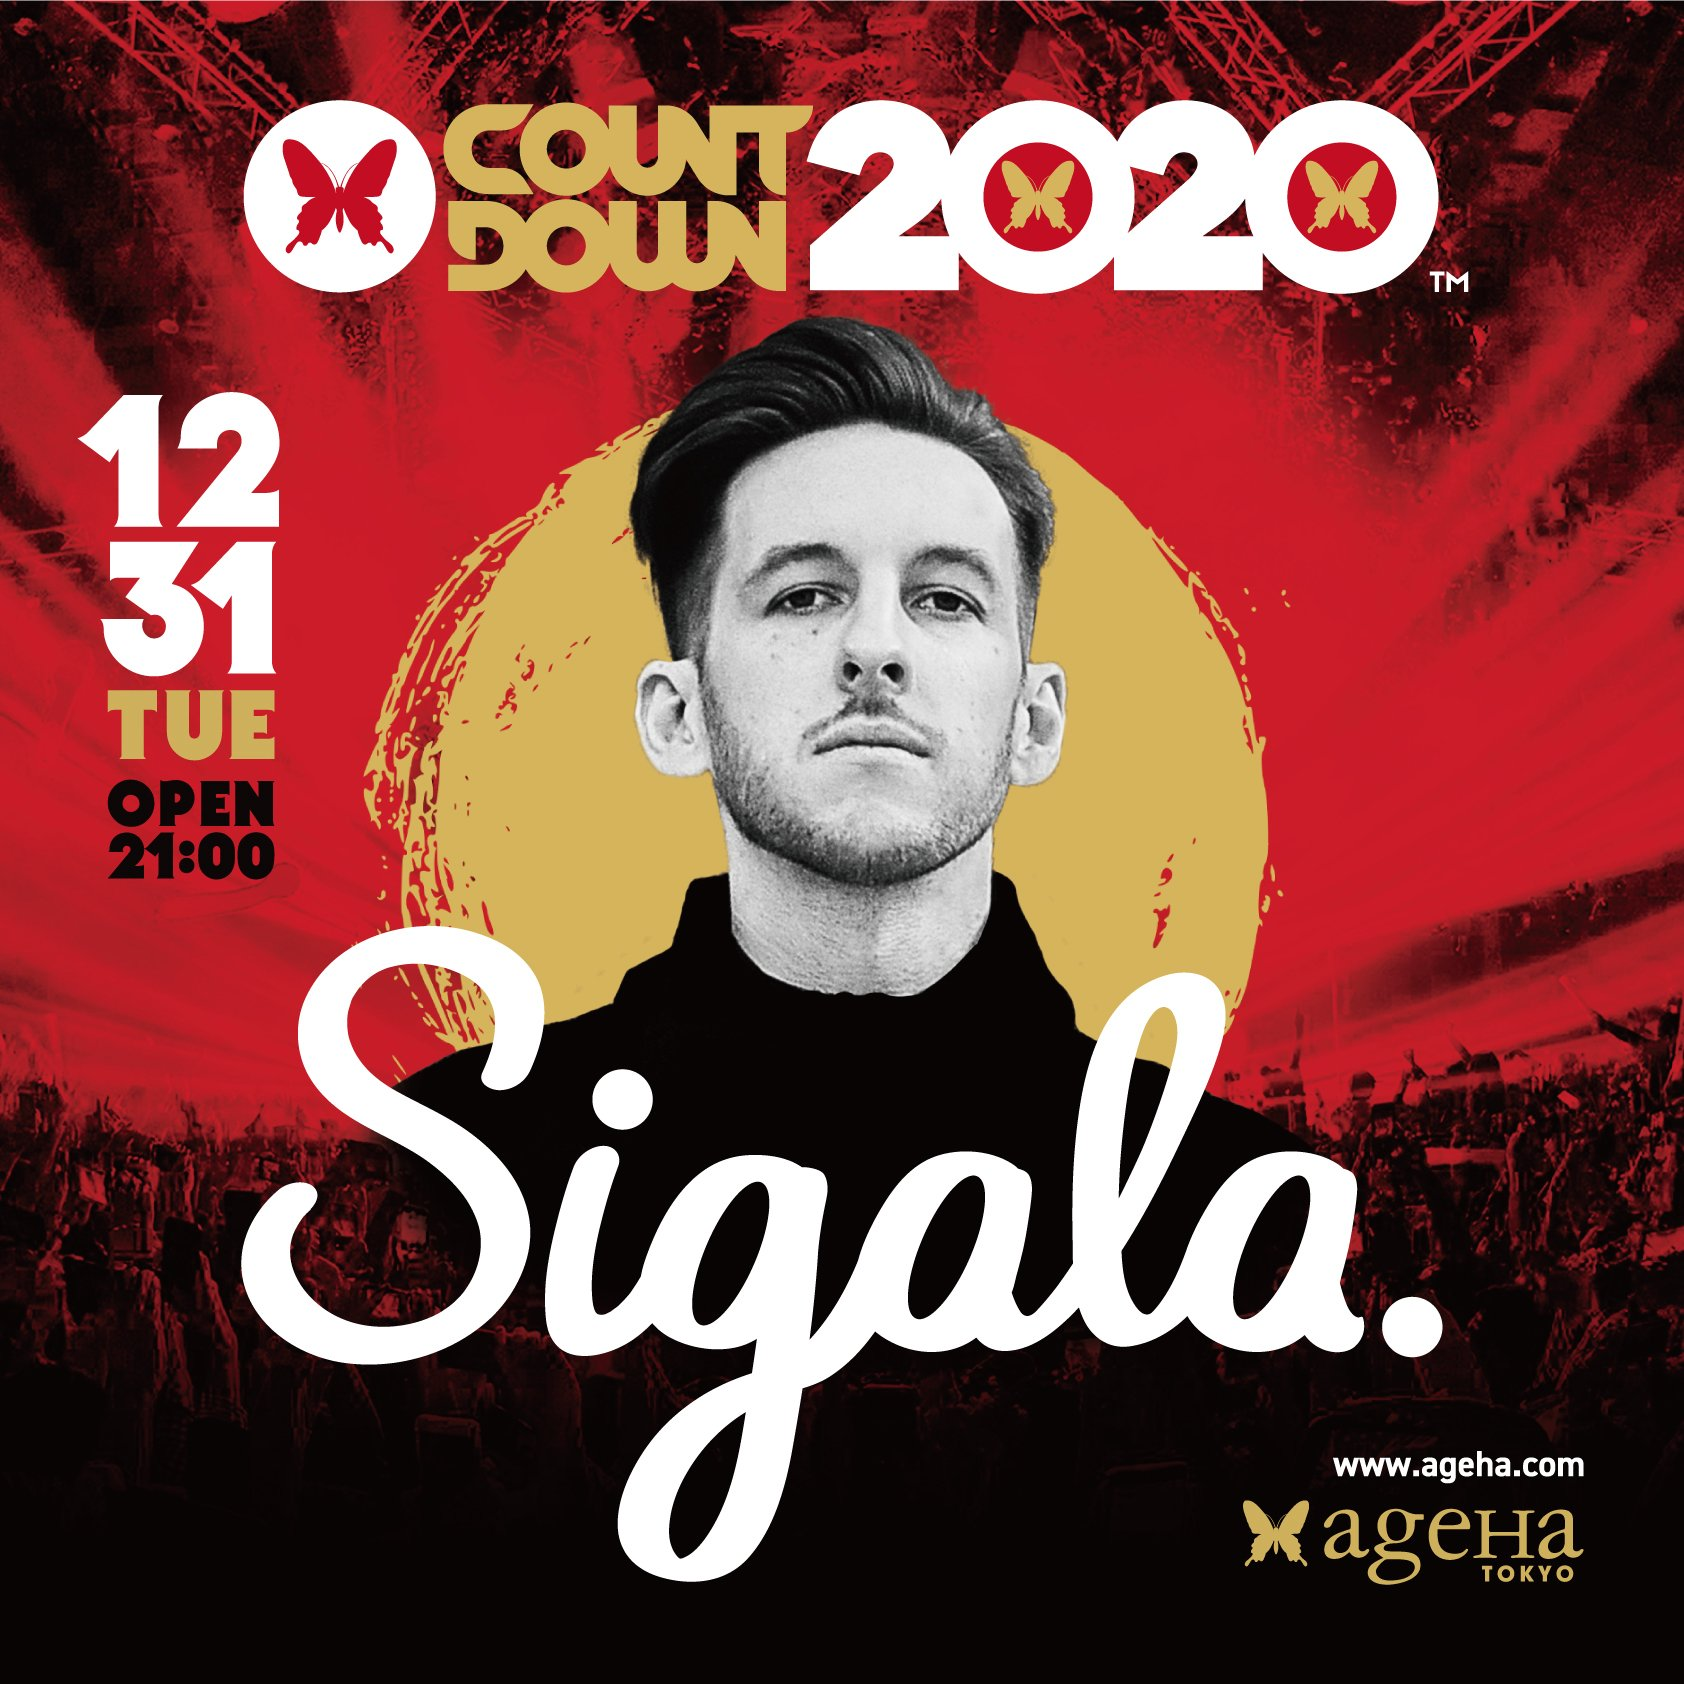 ageHa COUNTDOWN to 2020 フライヤー